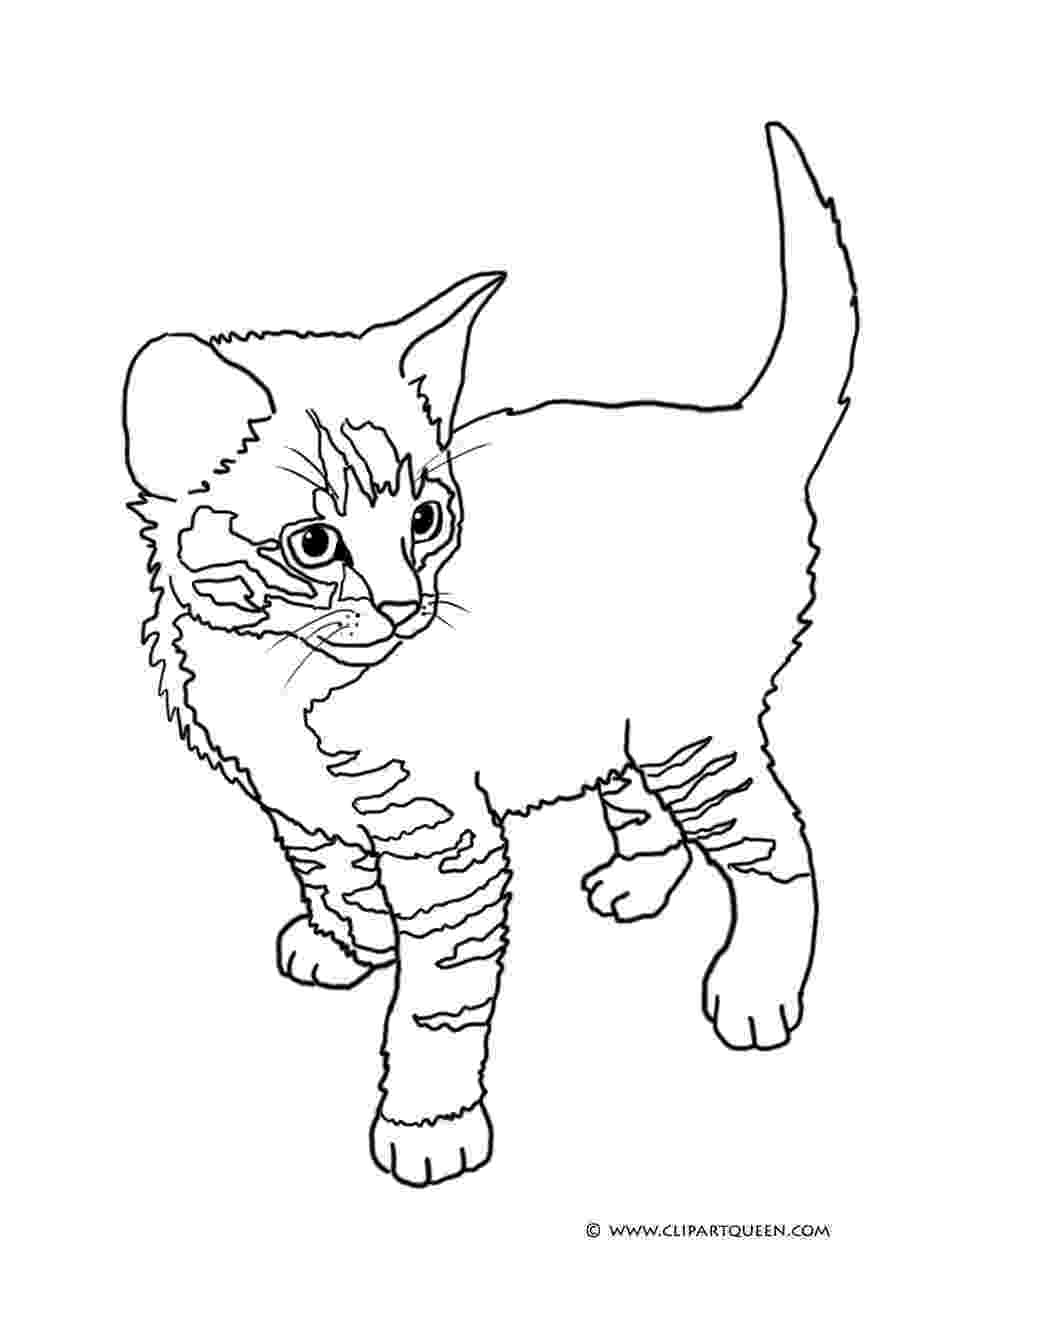 coloring pictures of kittens kitten coloring pages best coloring pages for kids coloring kittens pictures of